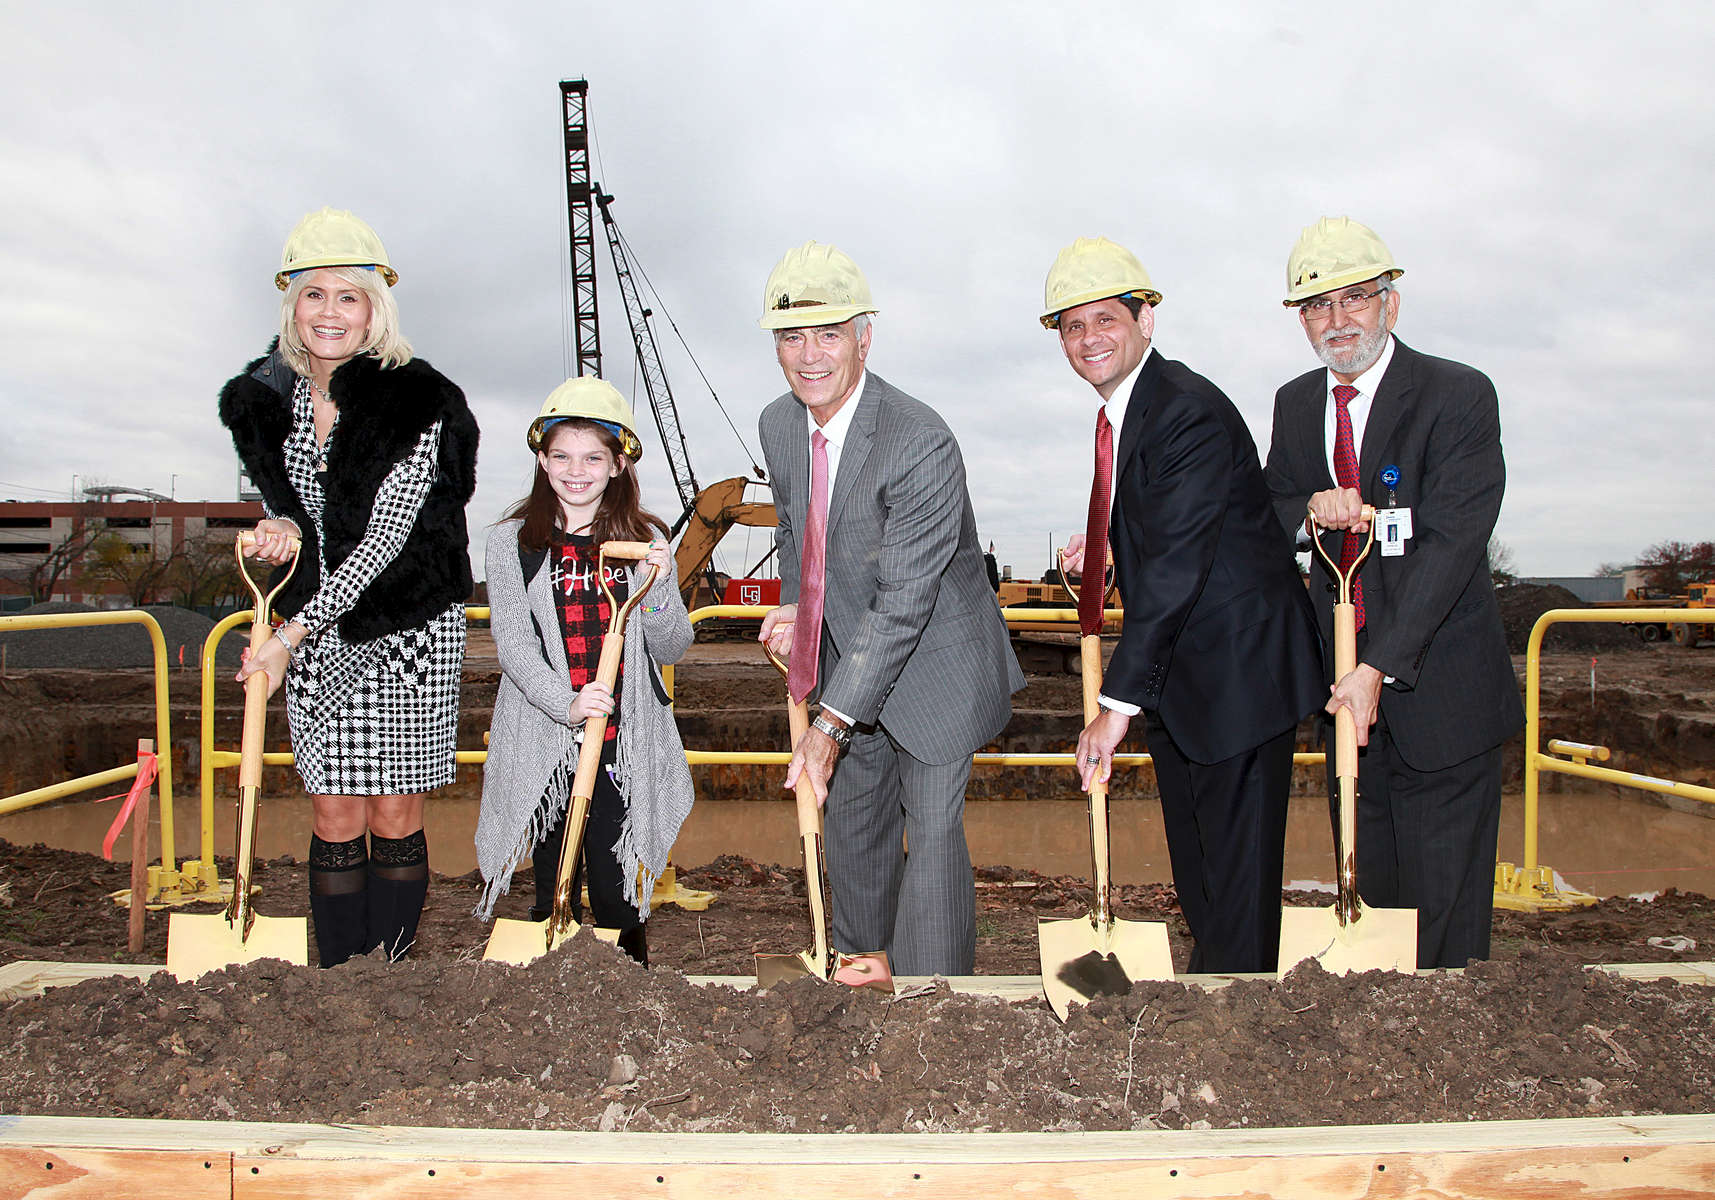 Jersey Shore Medical Center Hope Tower Ground Breaking Ceremony.